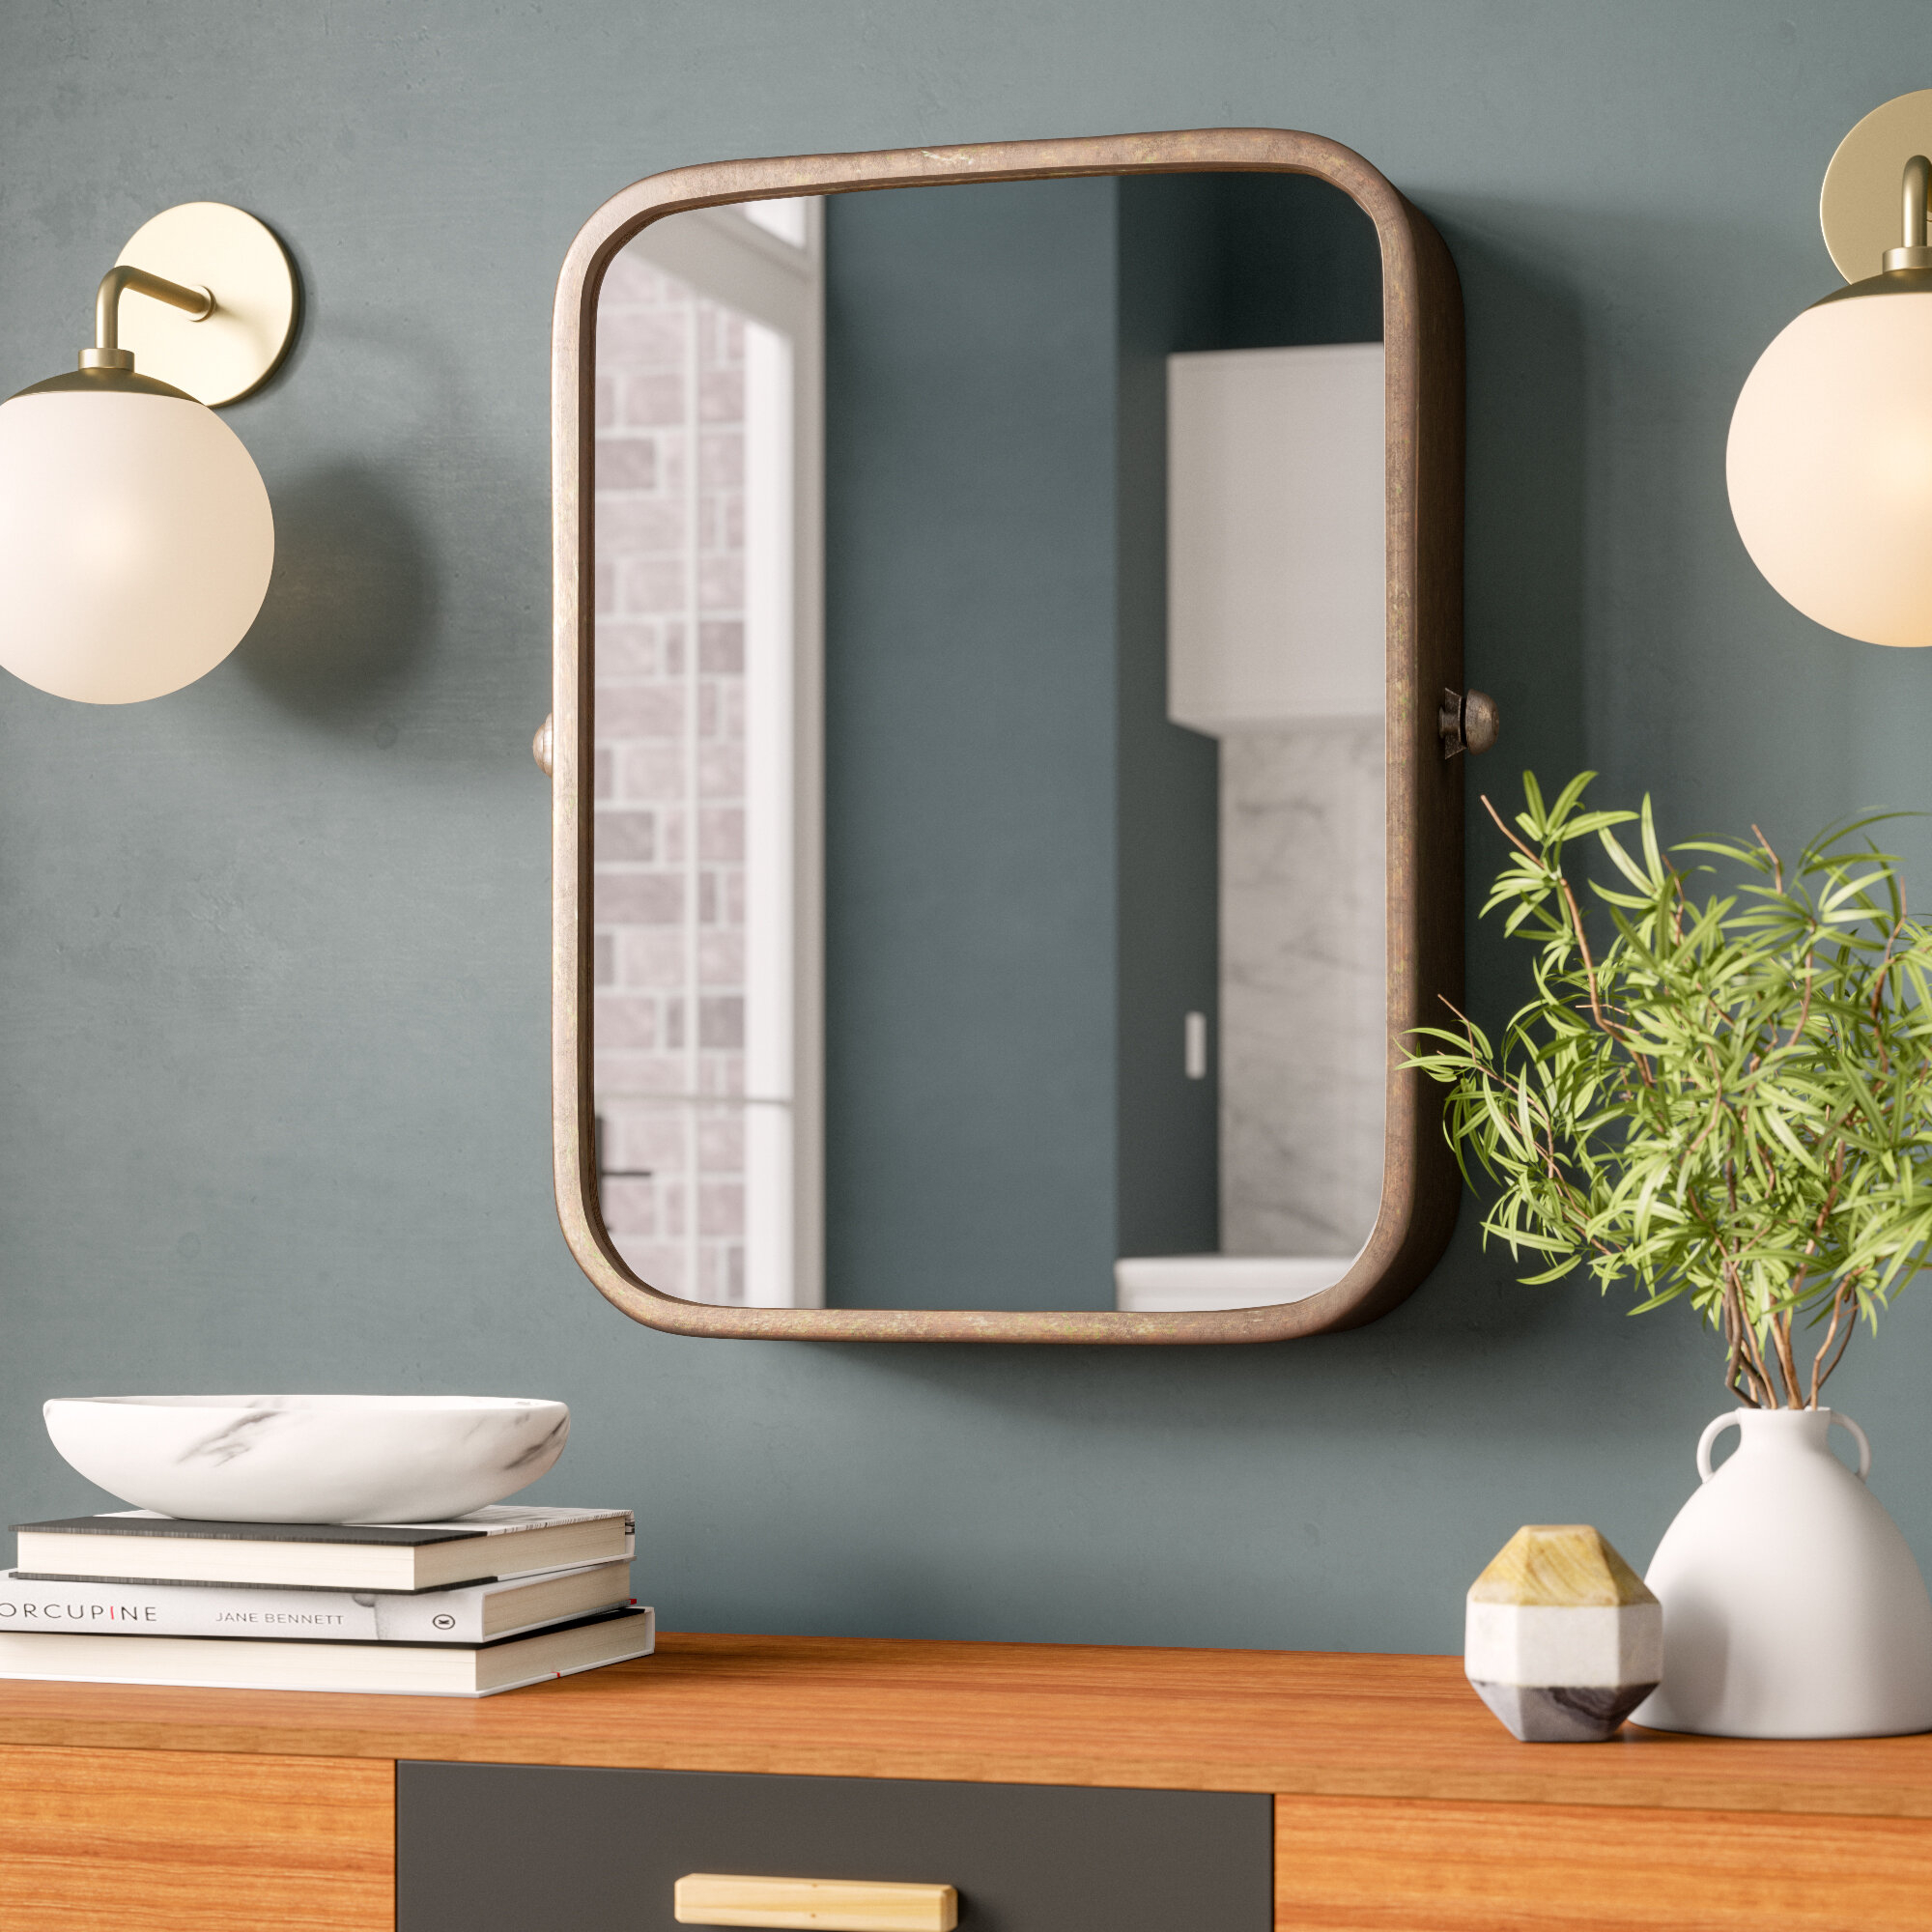 Metal Wall Mirrors You'll Love In 2019 | Wayfair intended for Koeller Industrial Metal Wall Mirrors (Image 17 of 30)